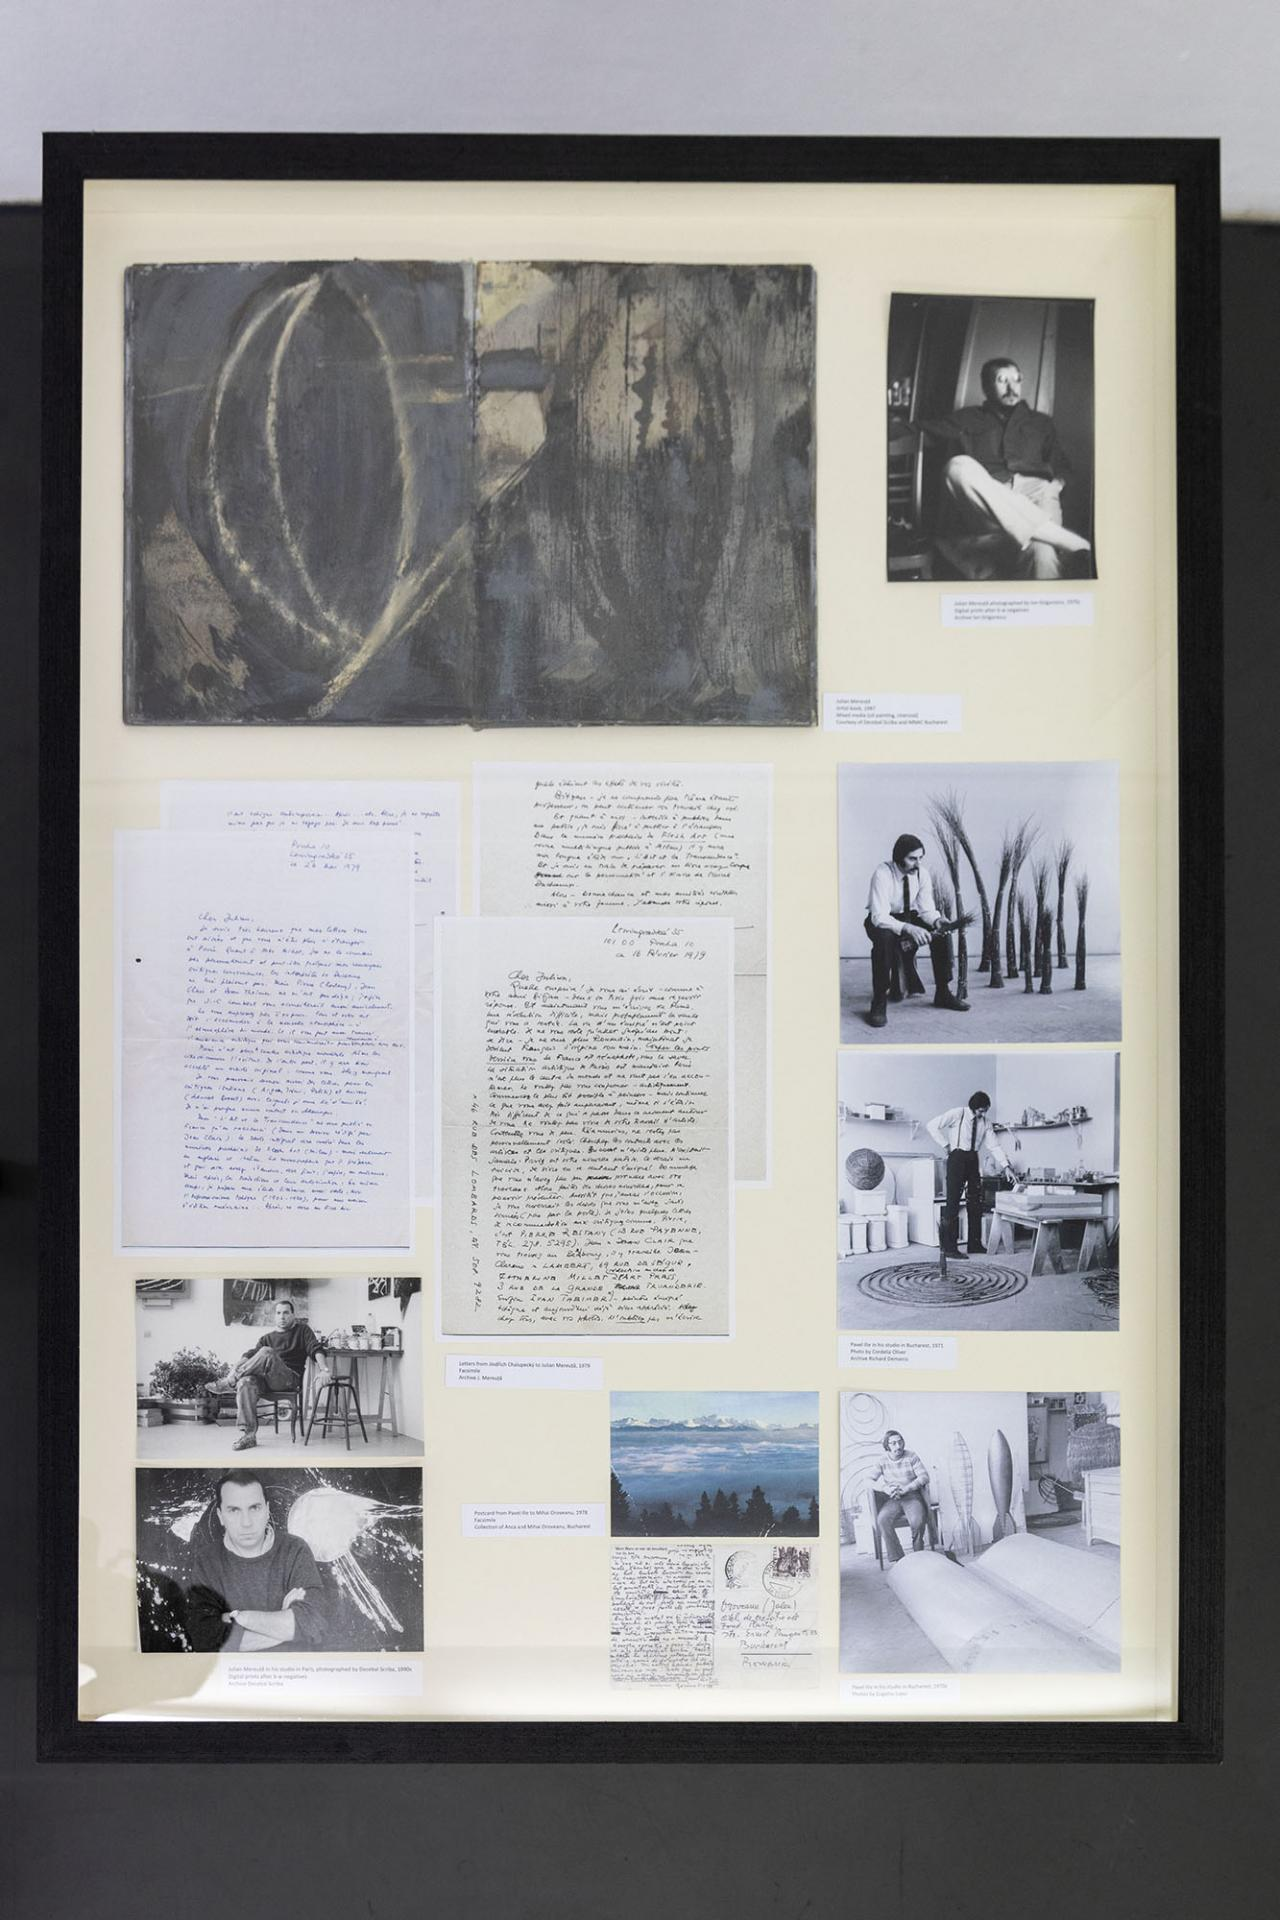 Vitrine with Julian Mereuță, Artist book , 1987, Mixed media (oil painting, charcoal); letters of Jindřich Chalupecký, Julian Mereuță, Pavel Ilie, Mihai Oroveanu; and photographs by Decebal Scriba, Ion Grigorescu, Cordelia Oliver and Eugeniu Lupu